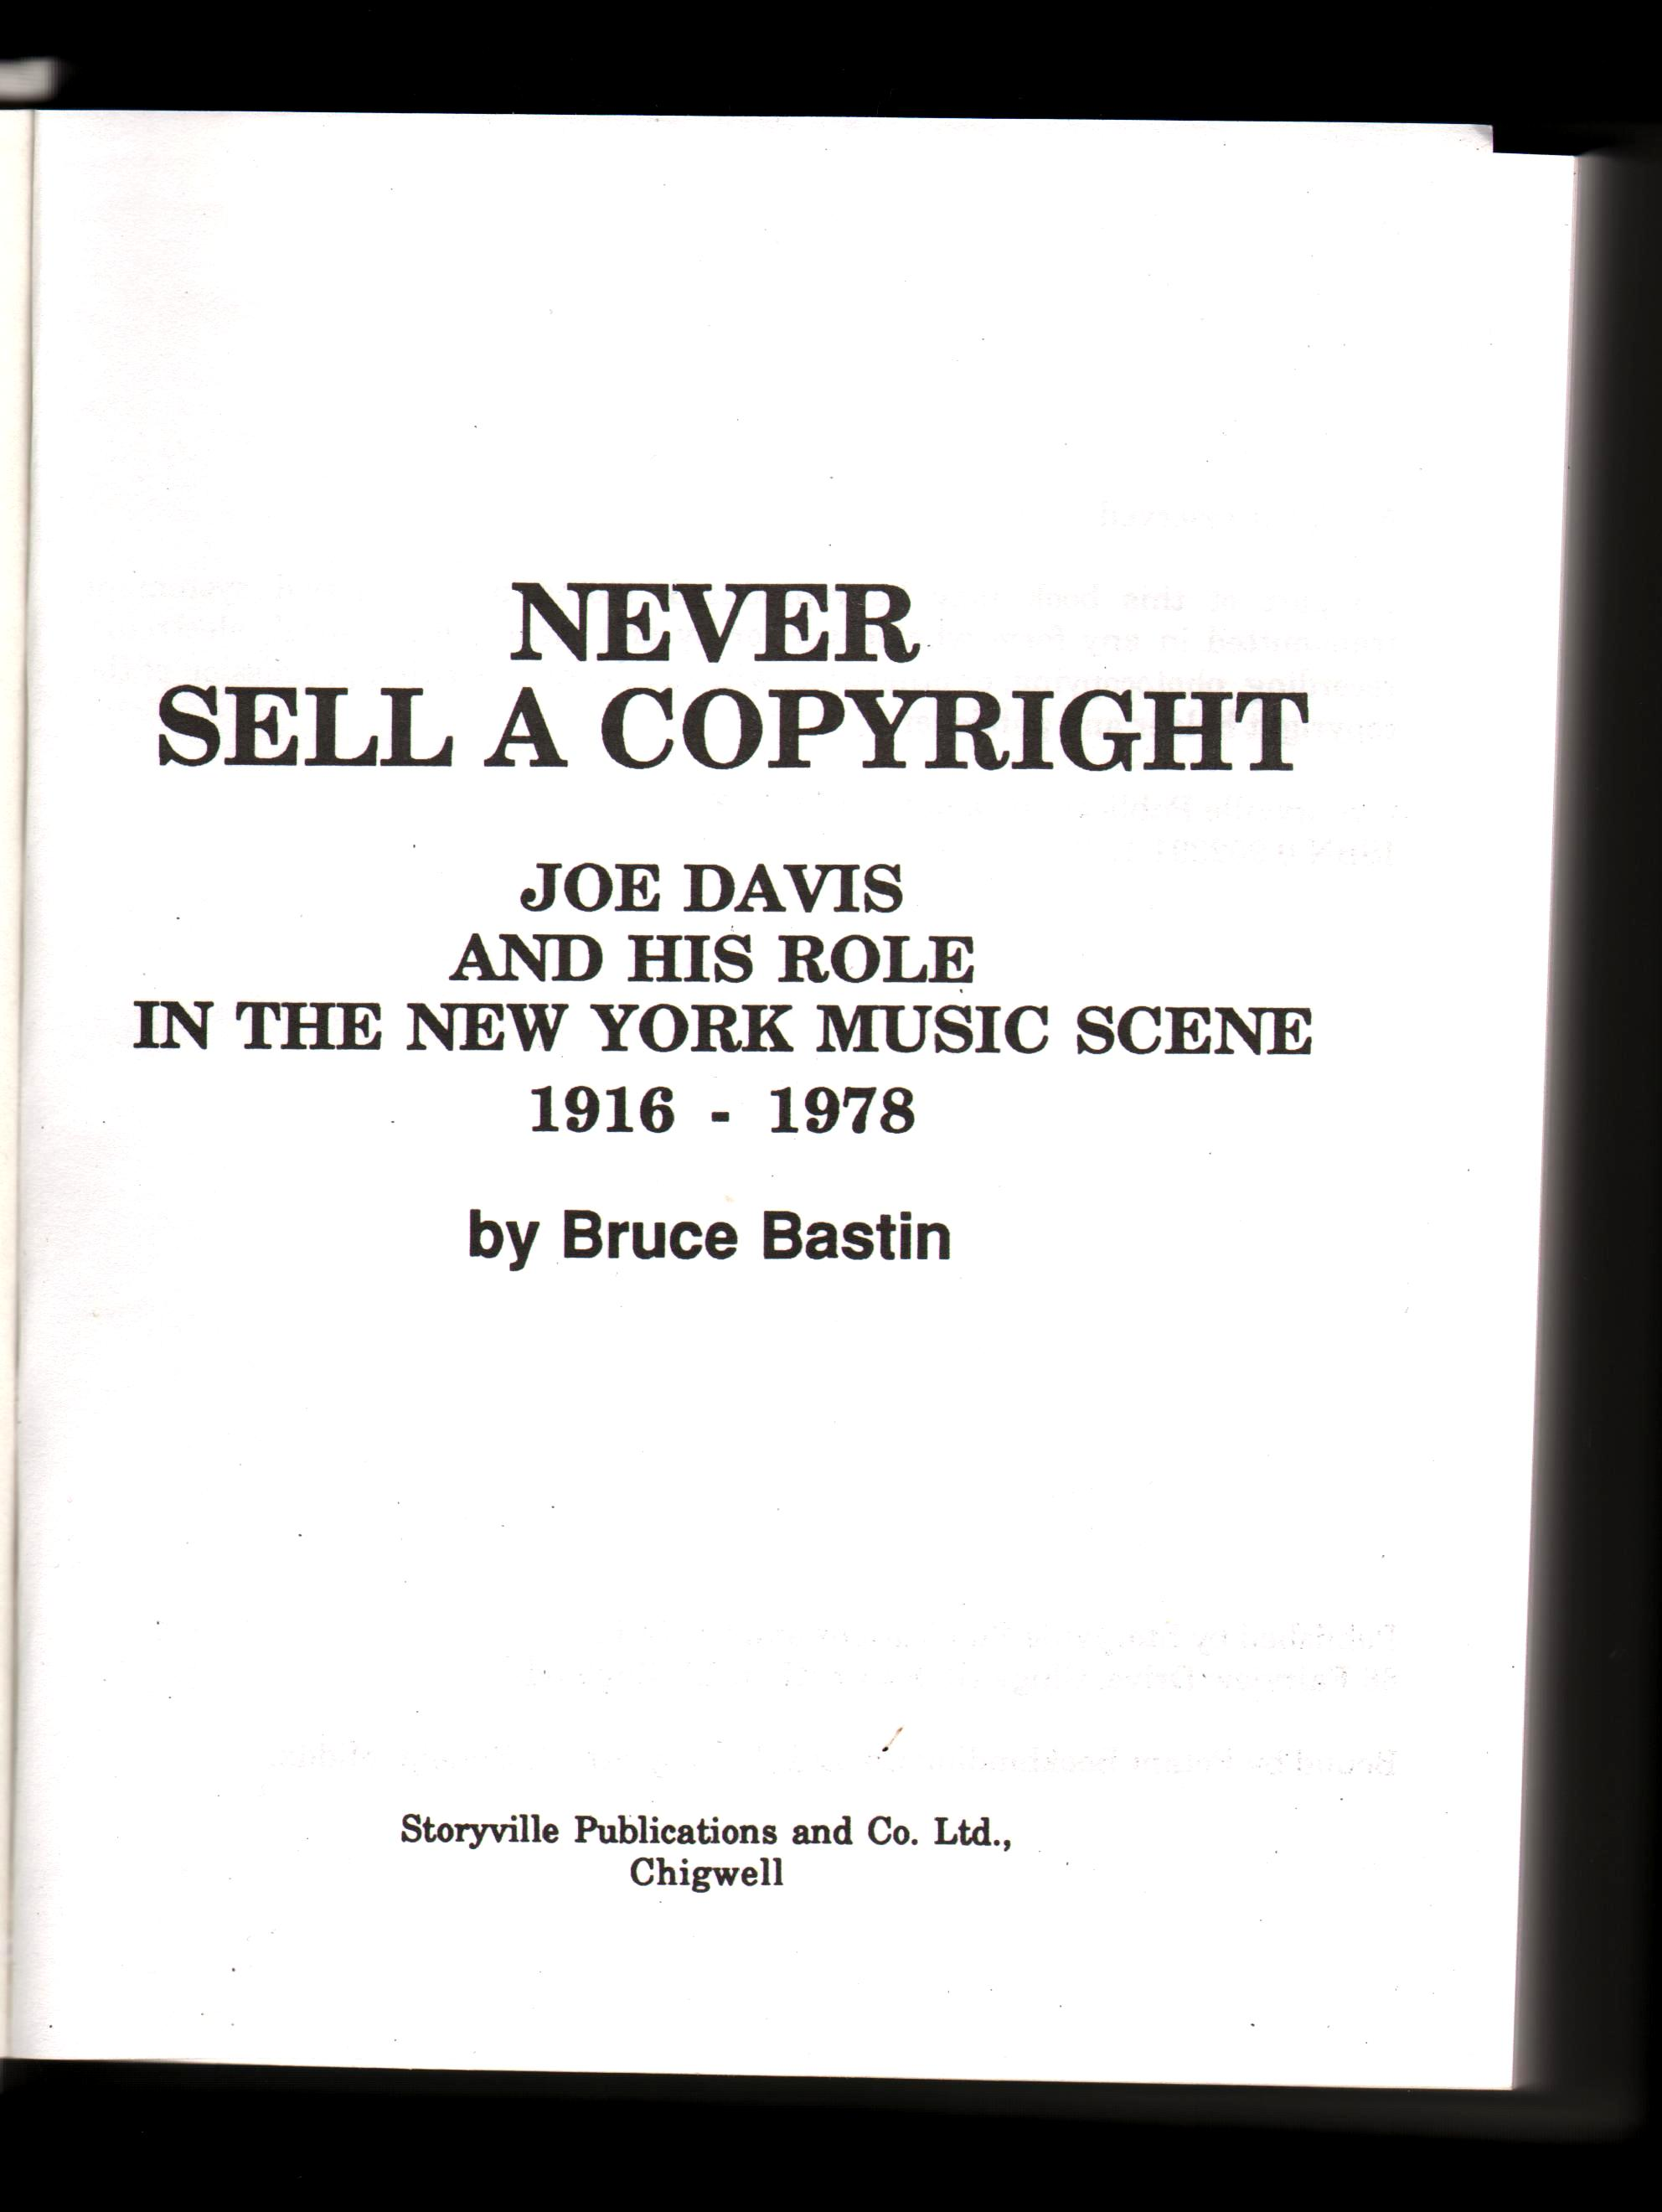 Never Sell A Copyright. Joe Davis and His Role in the New York Music Scene 1916-1978.